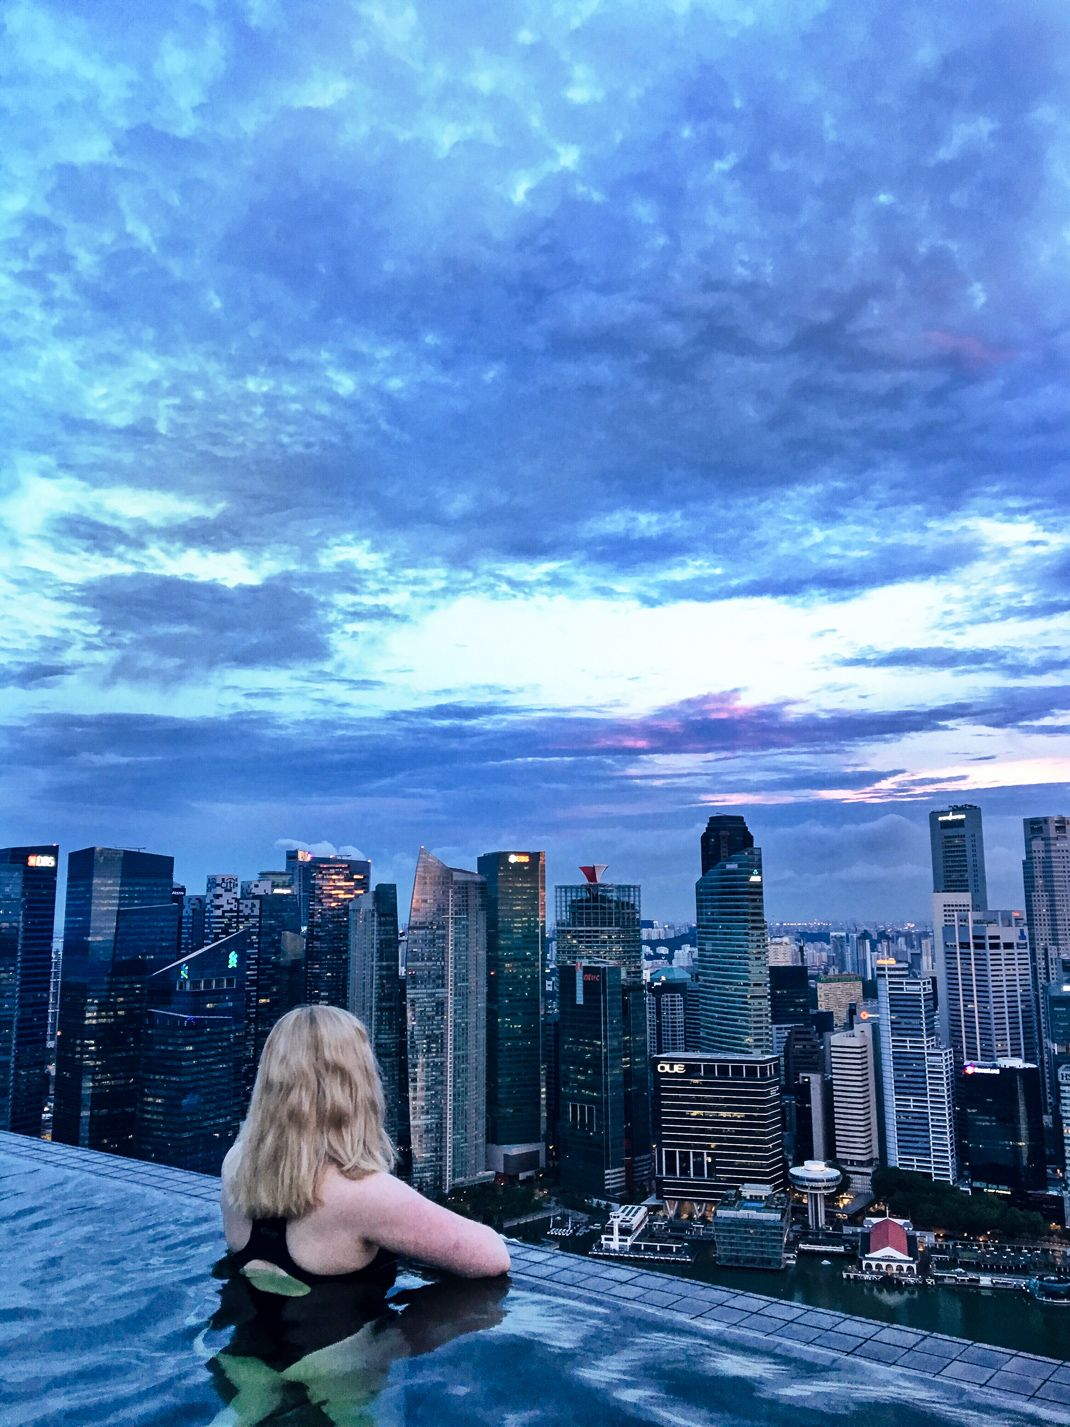 Sunrise Swimming In The Infinity Pool At The Marina Bay Sands Hotel Infinity Pool Sands Singapore Singapore Travel